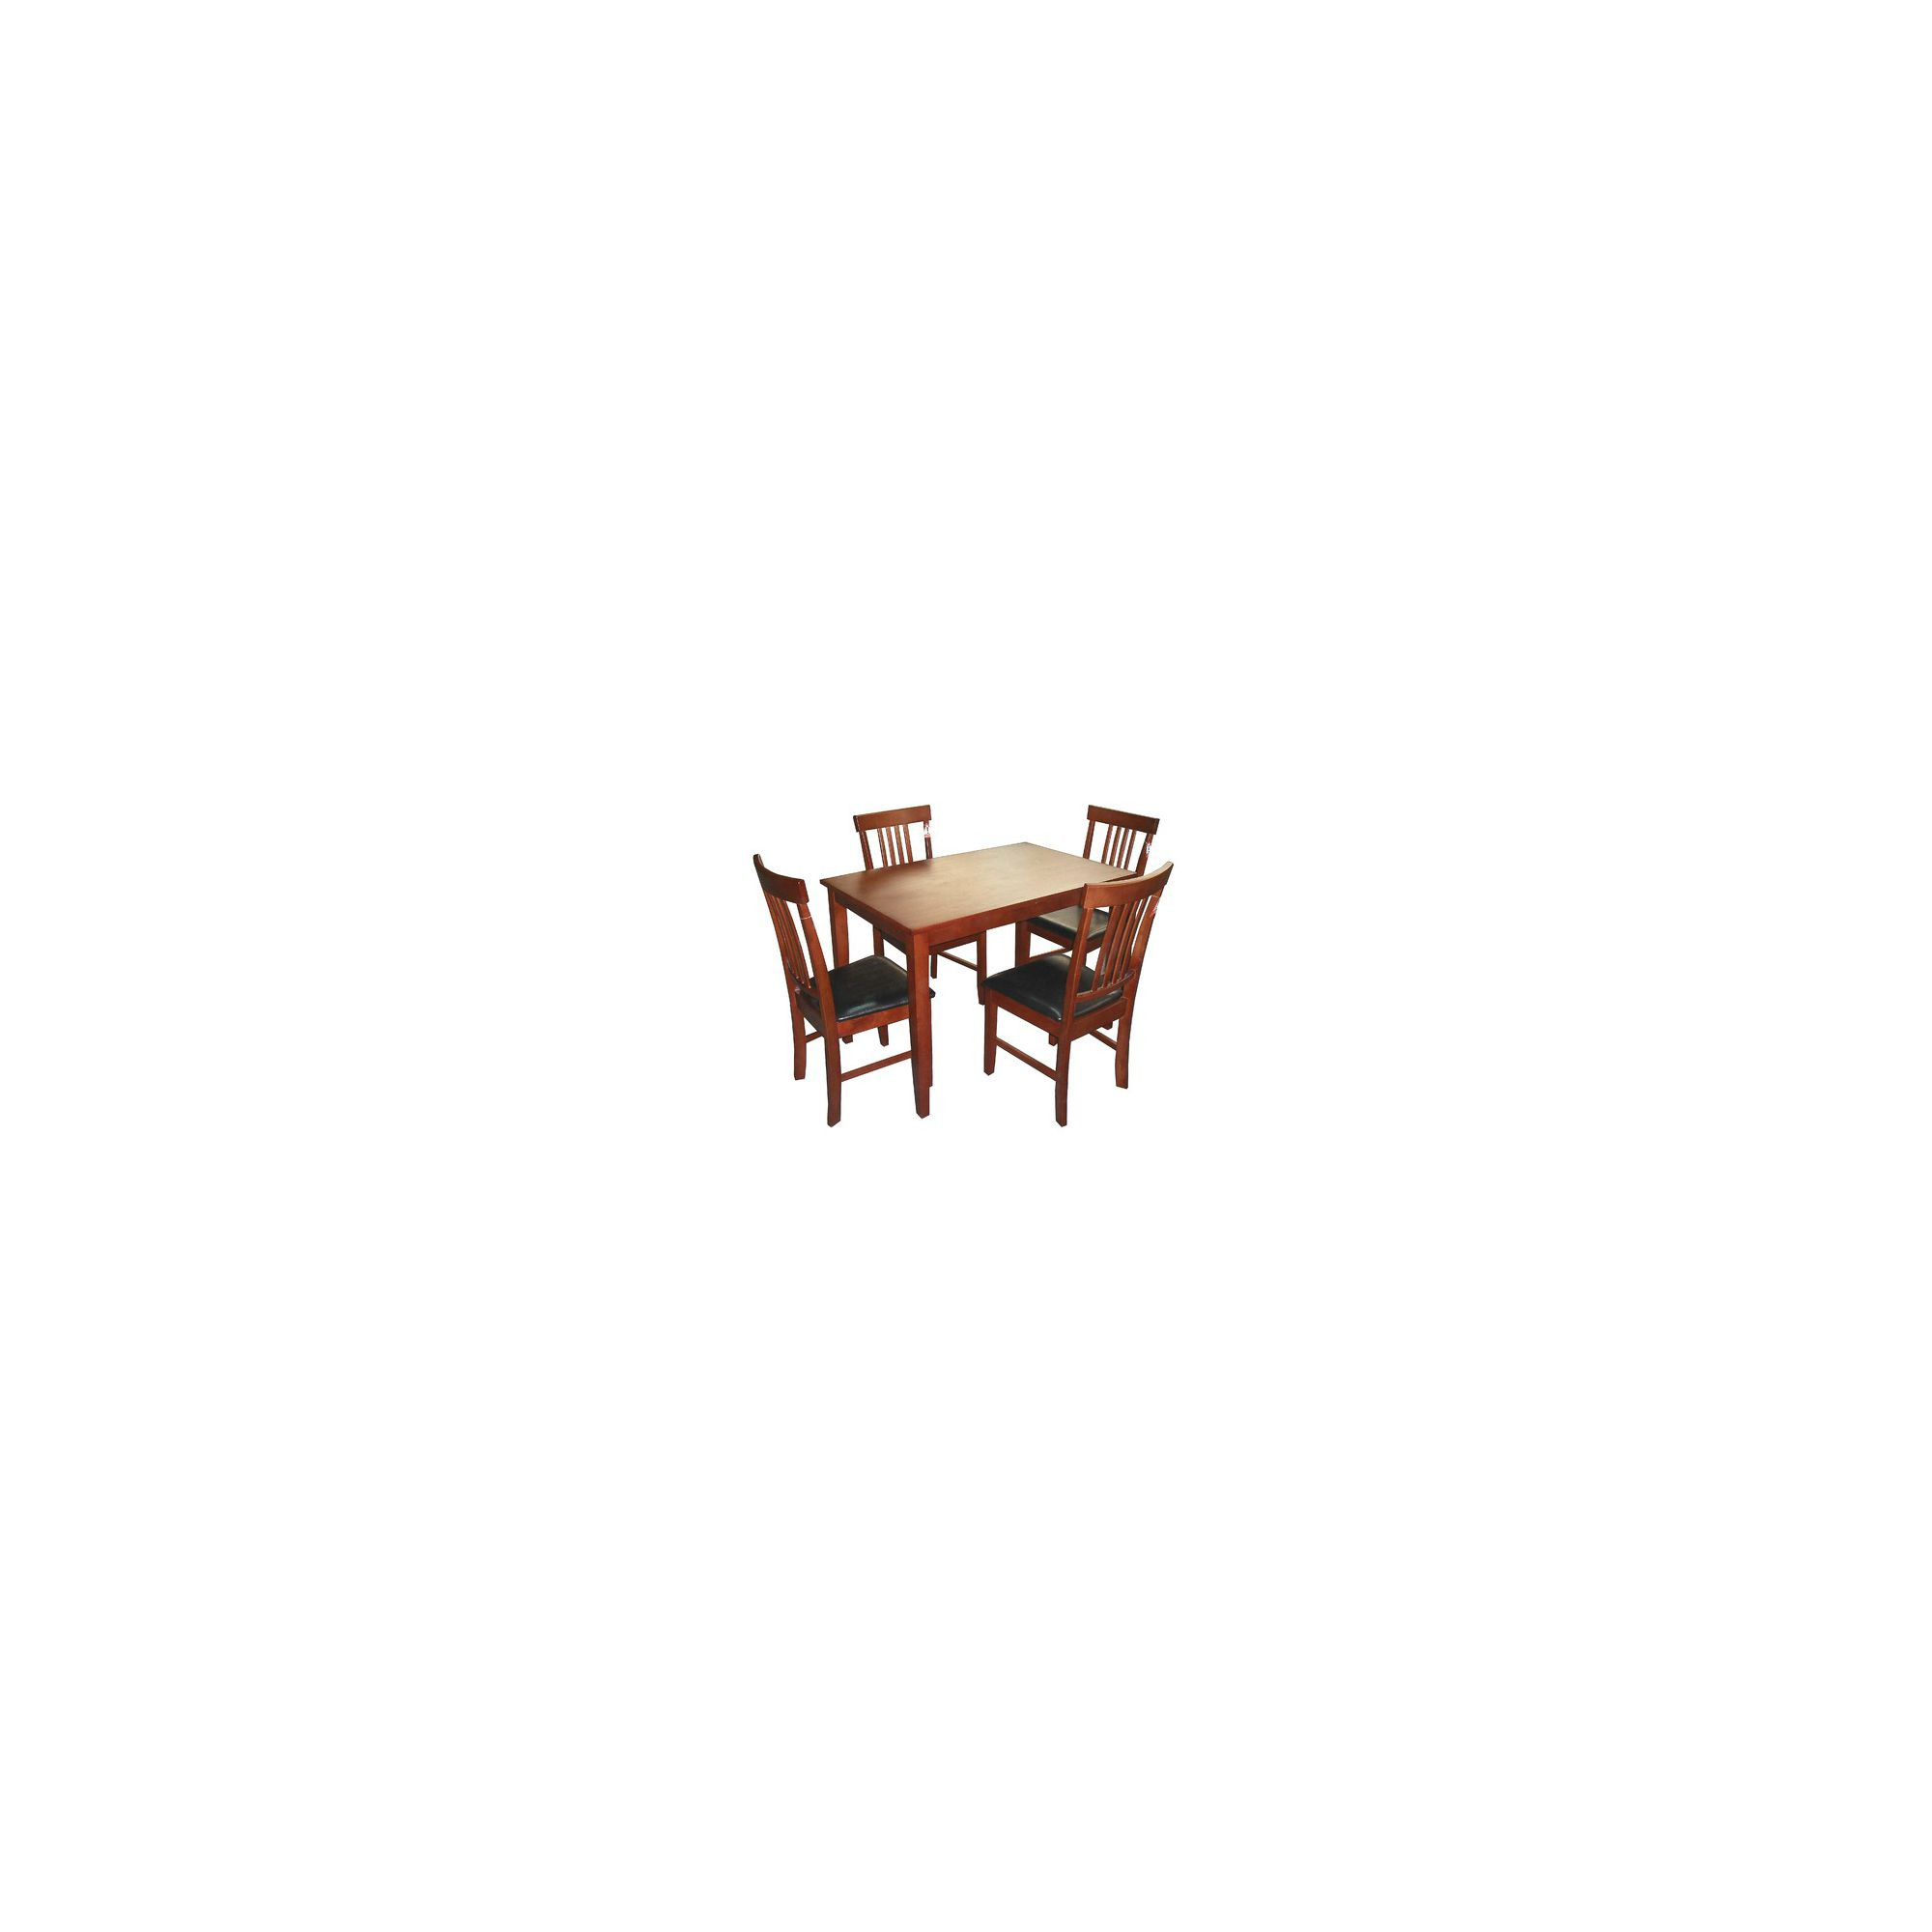 Heartlands Massa 4 Chair Dining Set - Small Table / 4 Chairs - Oak at Tesco Direct